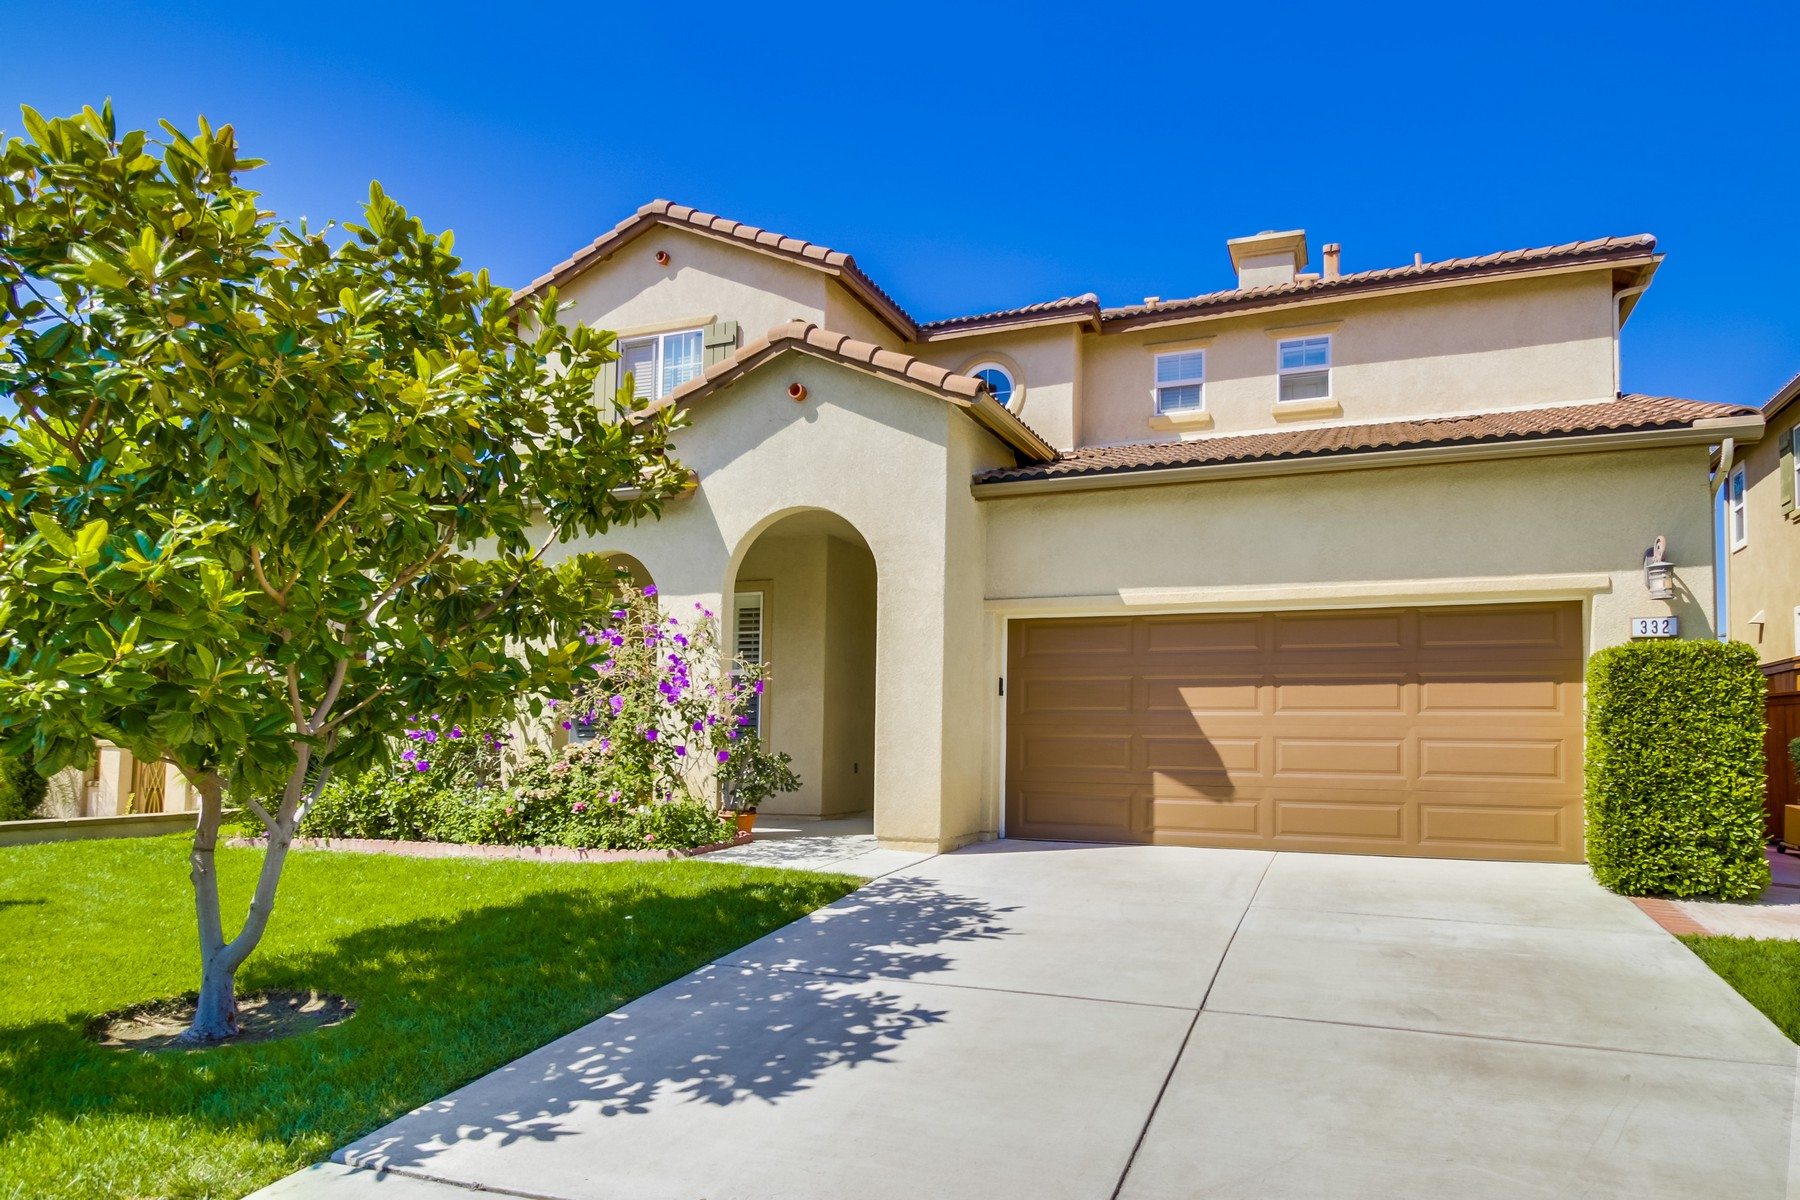 Property For Sale at 332 PLAZA LOS OSOS